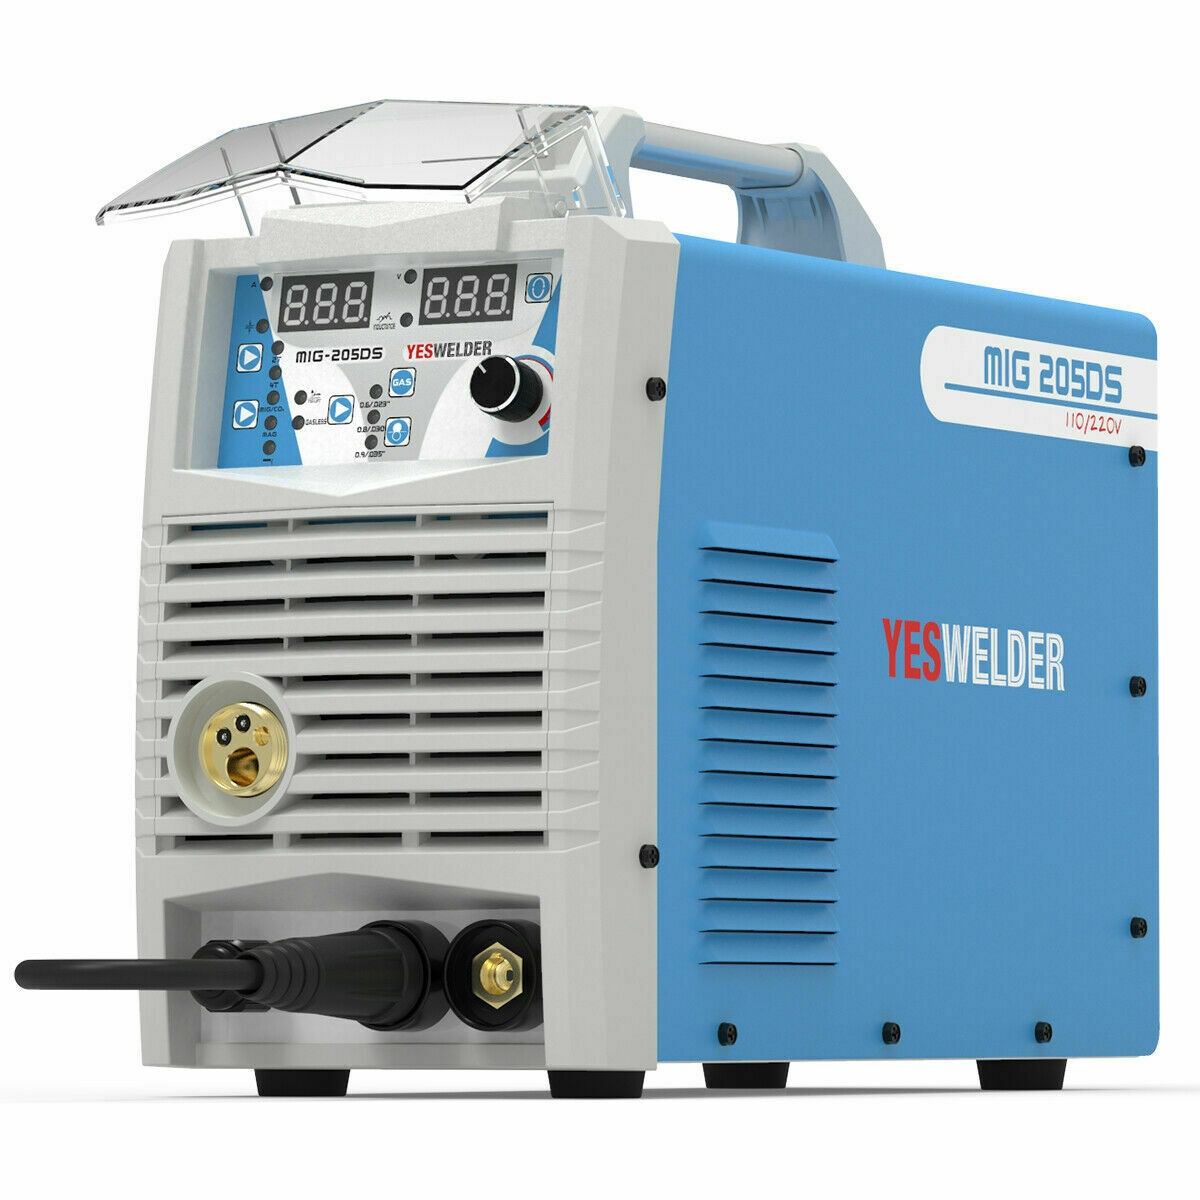 205A Digital MIG Welder 110/220V IGBT MIG ARC Lift TIG 3 in 1 Welding Machine. Buy it now for 335.39